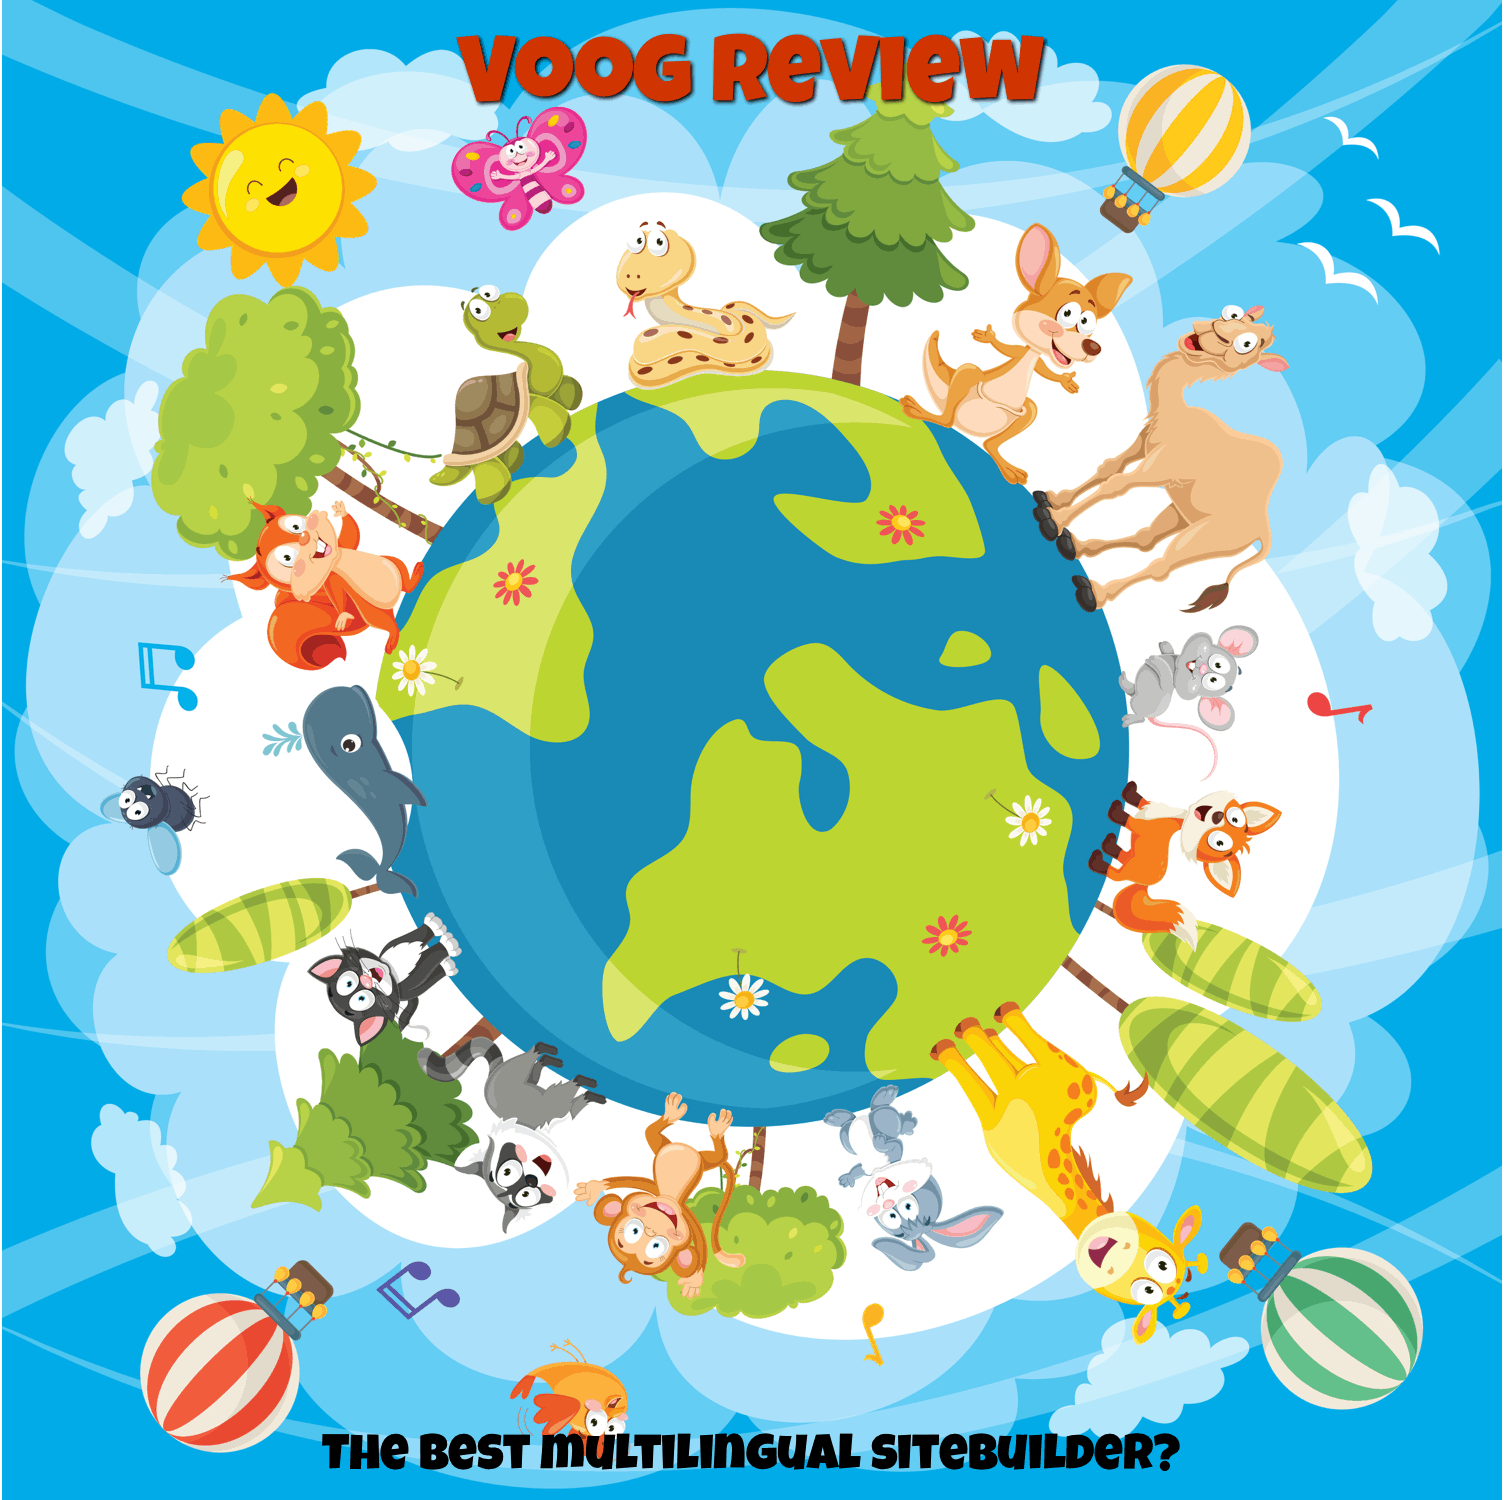 voog review